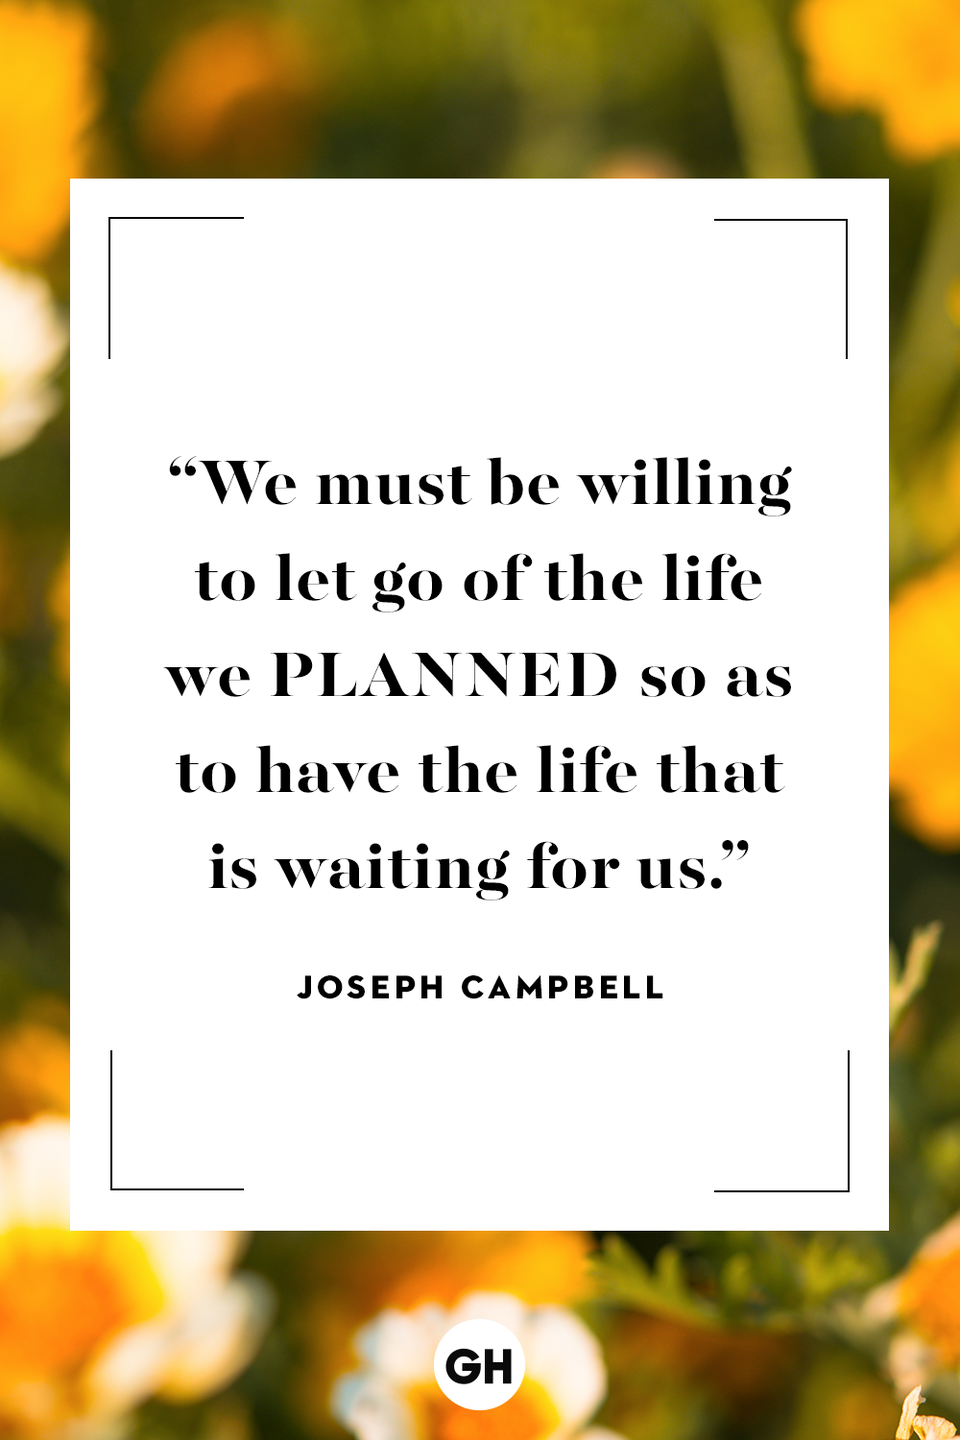 <p>We must be willing to let go of the life we planned so as to have the life that is waiting for us.</p>